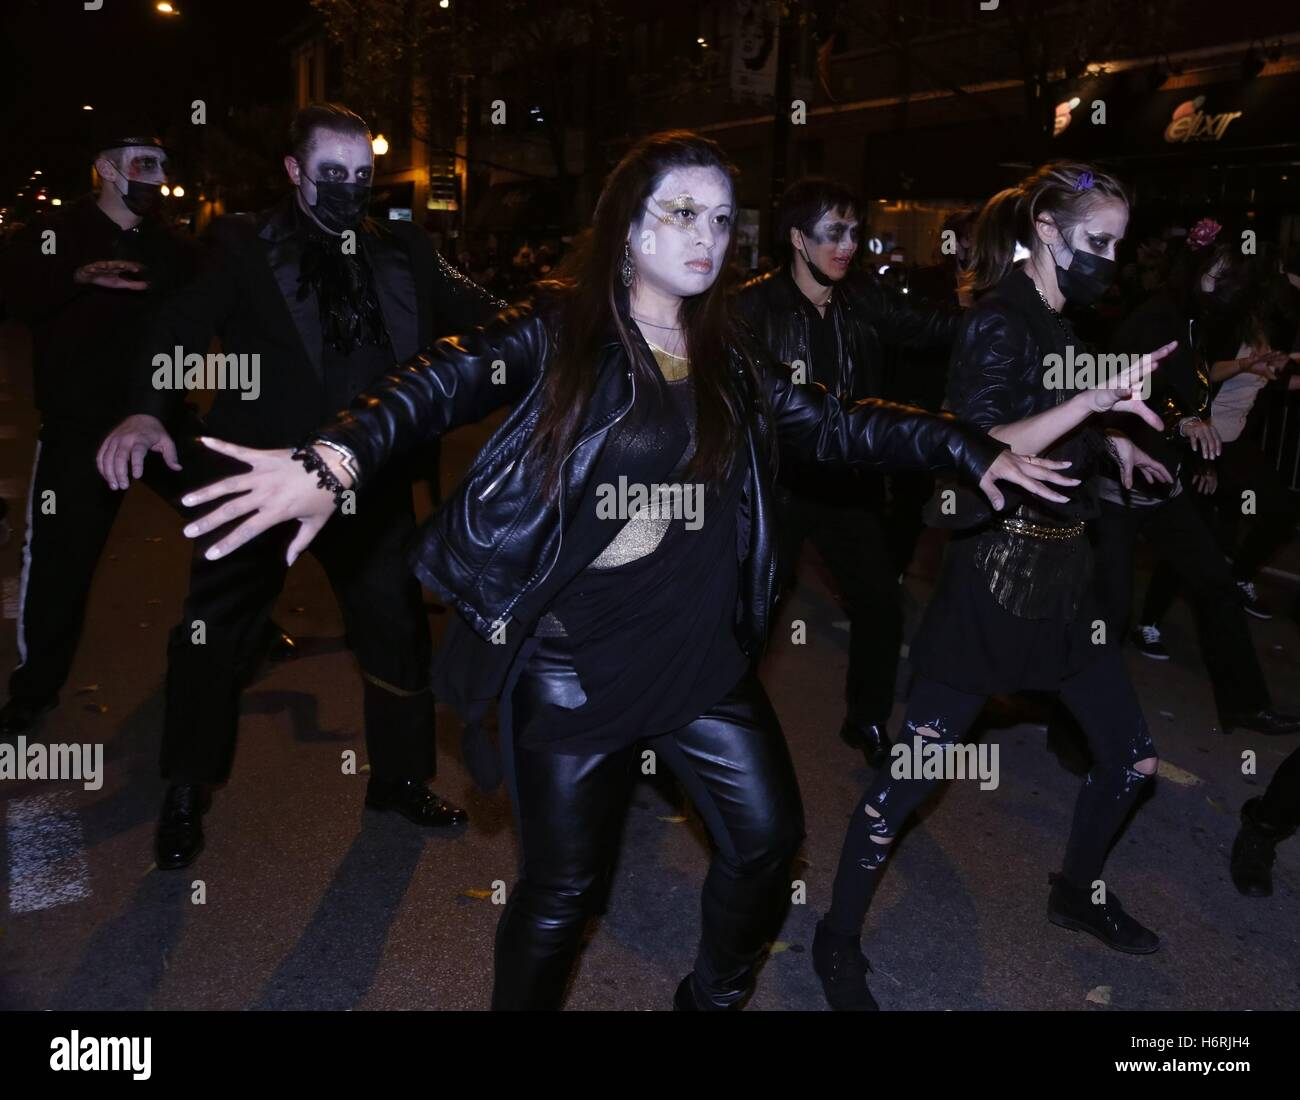 chicago, usa. 31st oct, 2016. people attend a halloween parade at